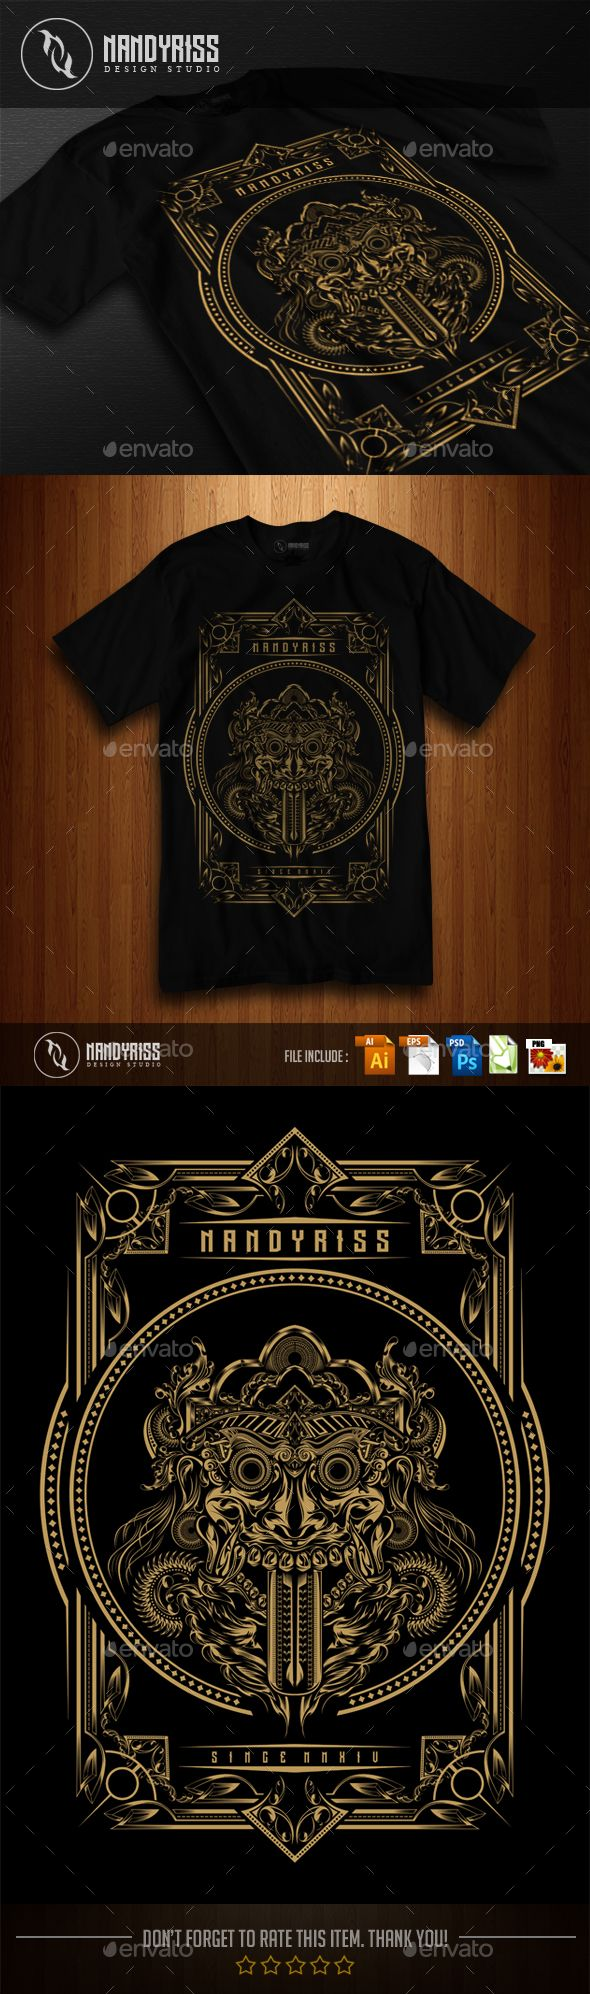 Shirt design ai